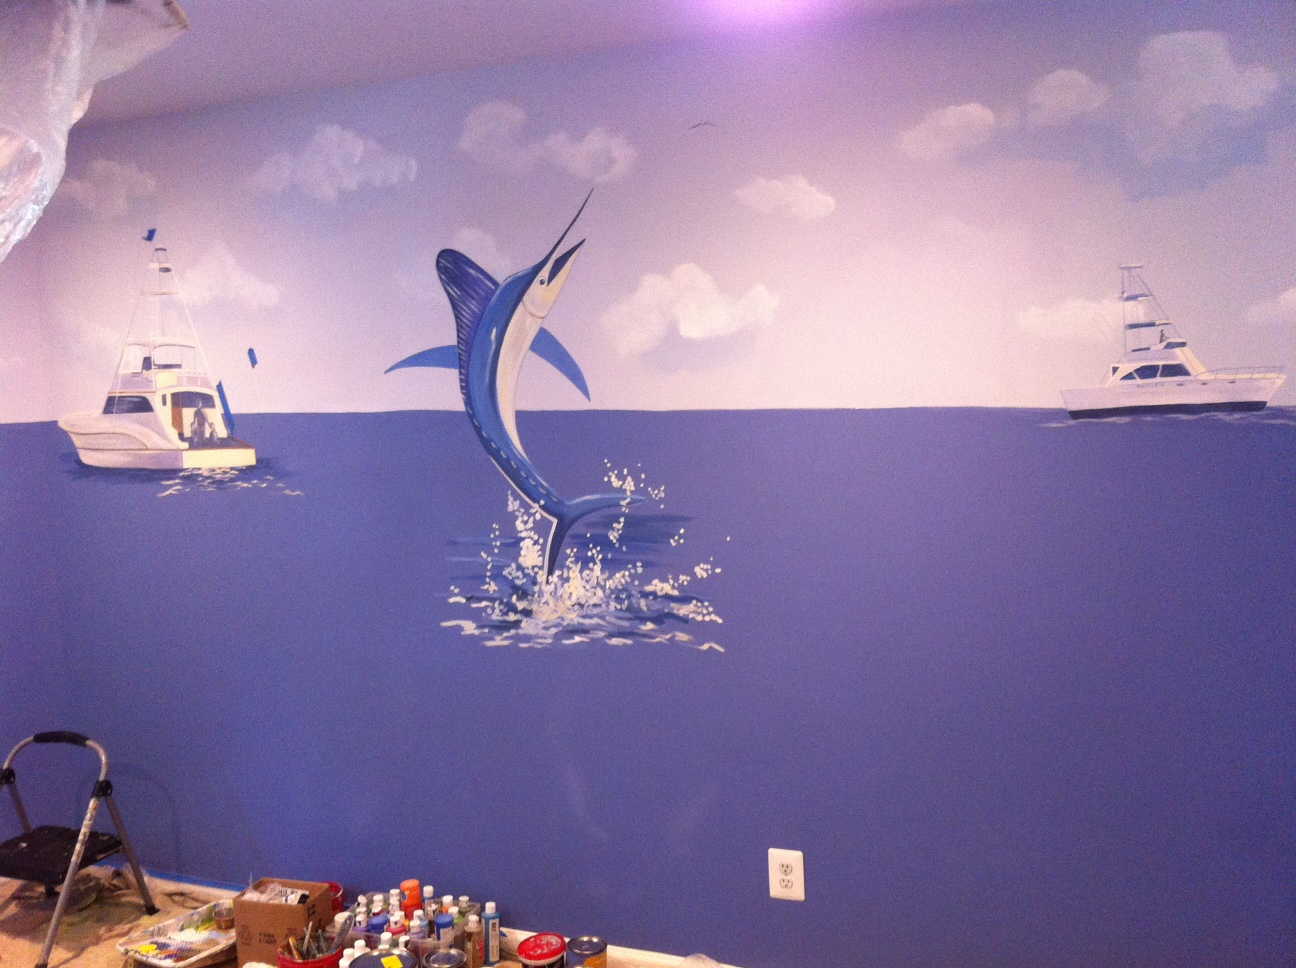 Fishing_boating_mural_1